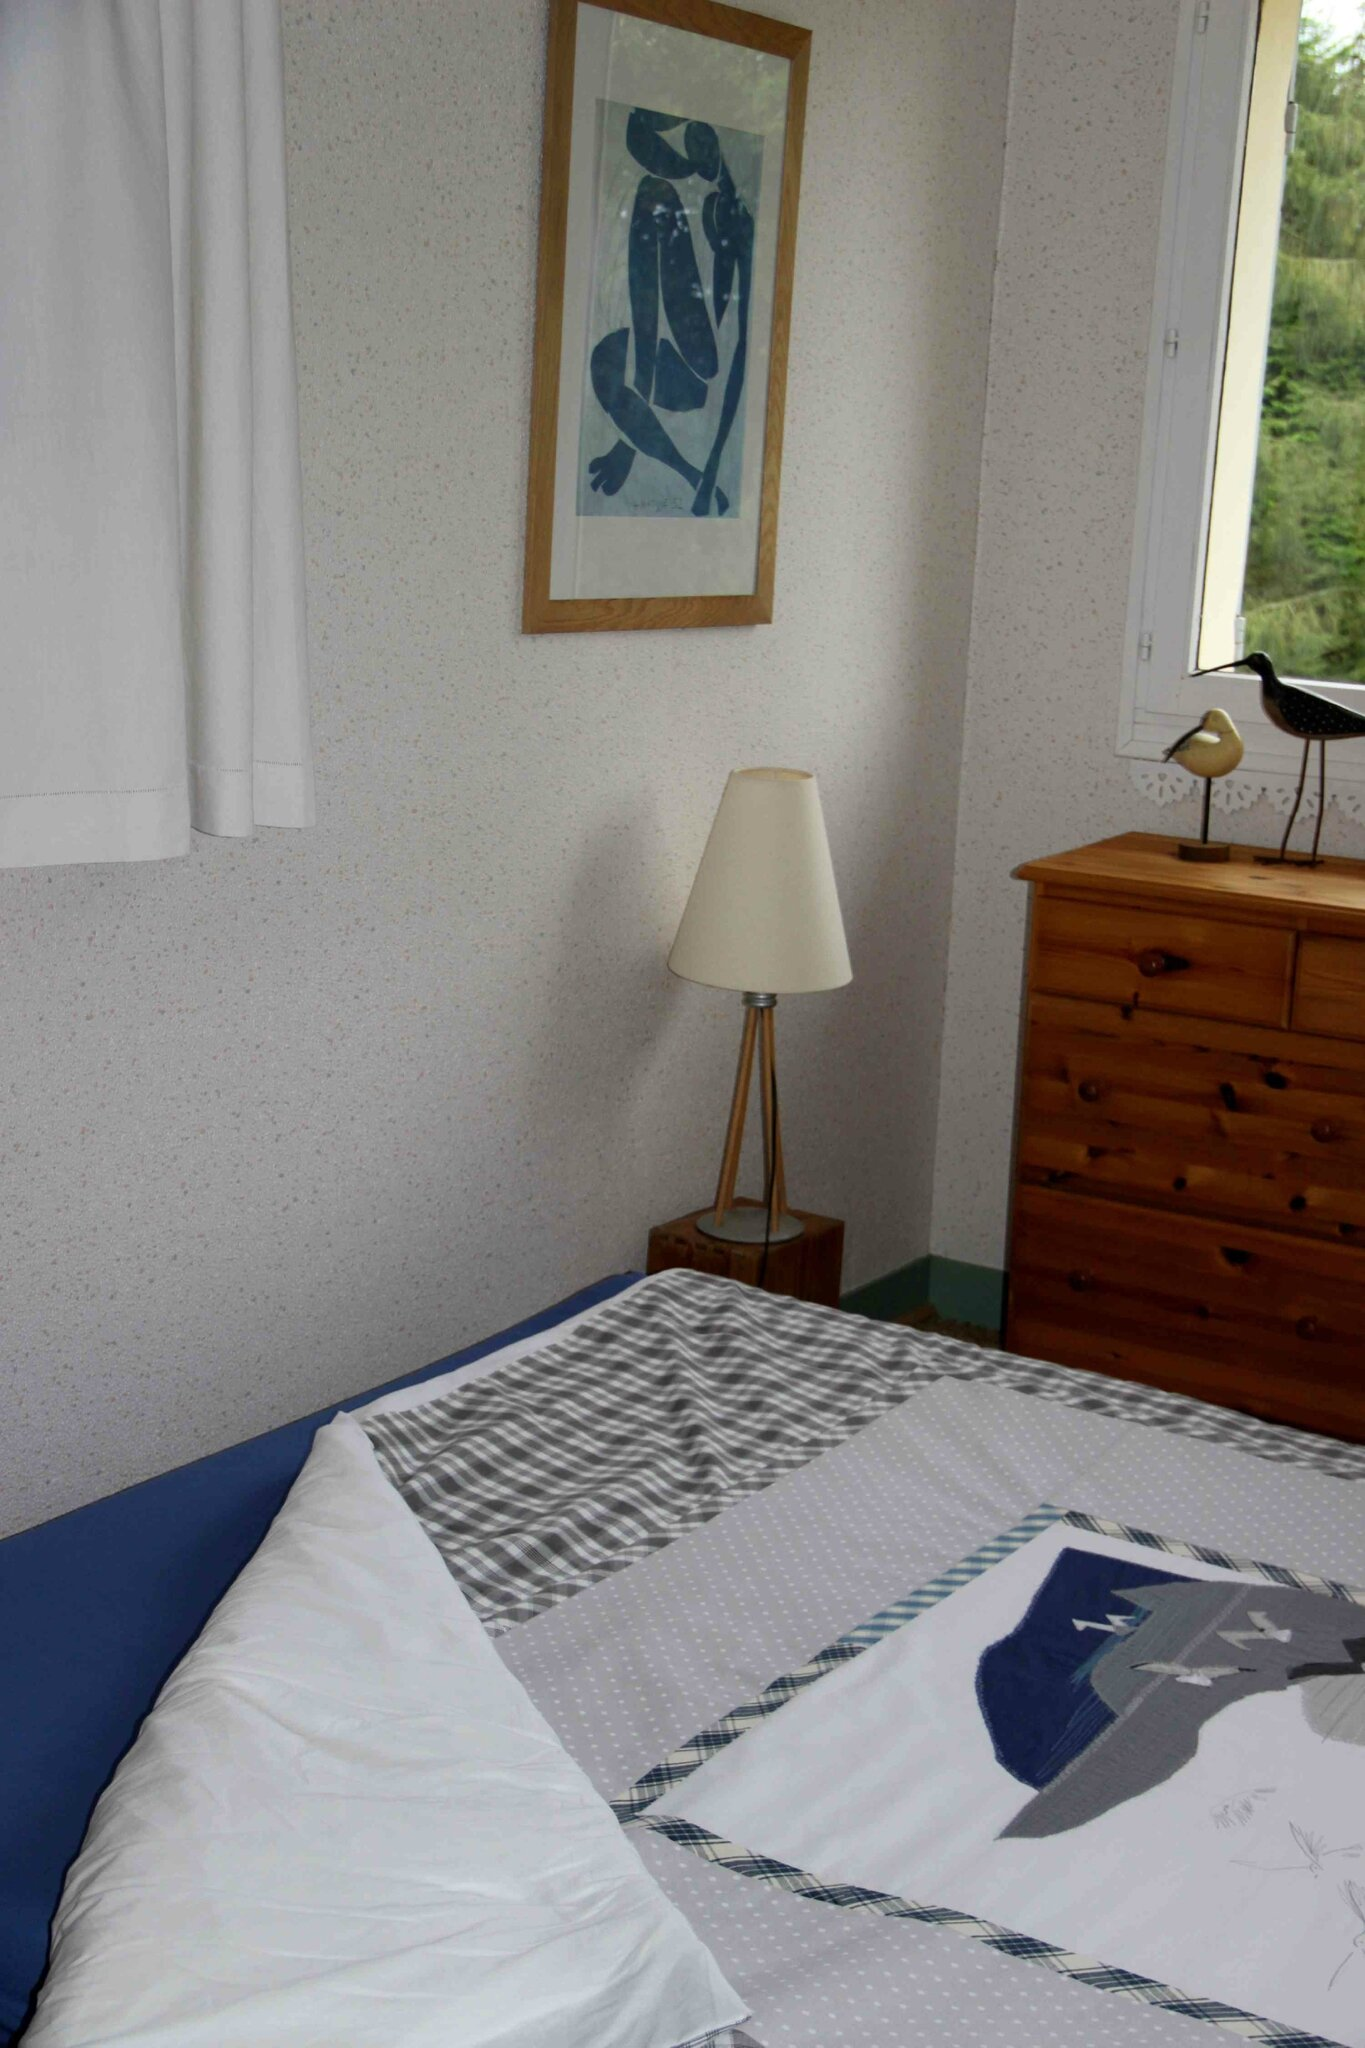 housse de couette de bord de mer jram a continue. Black Bedroom Furniture Sets. Home Design Ideas